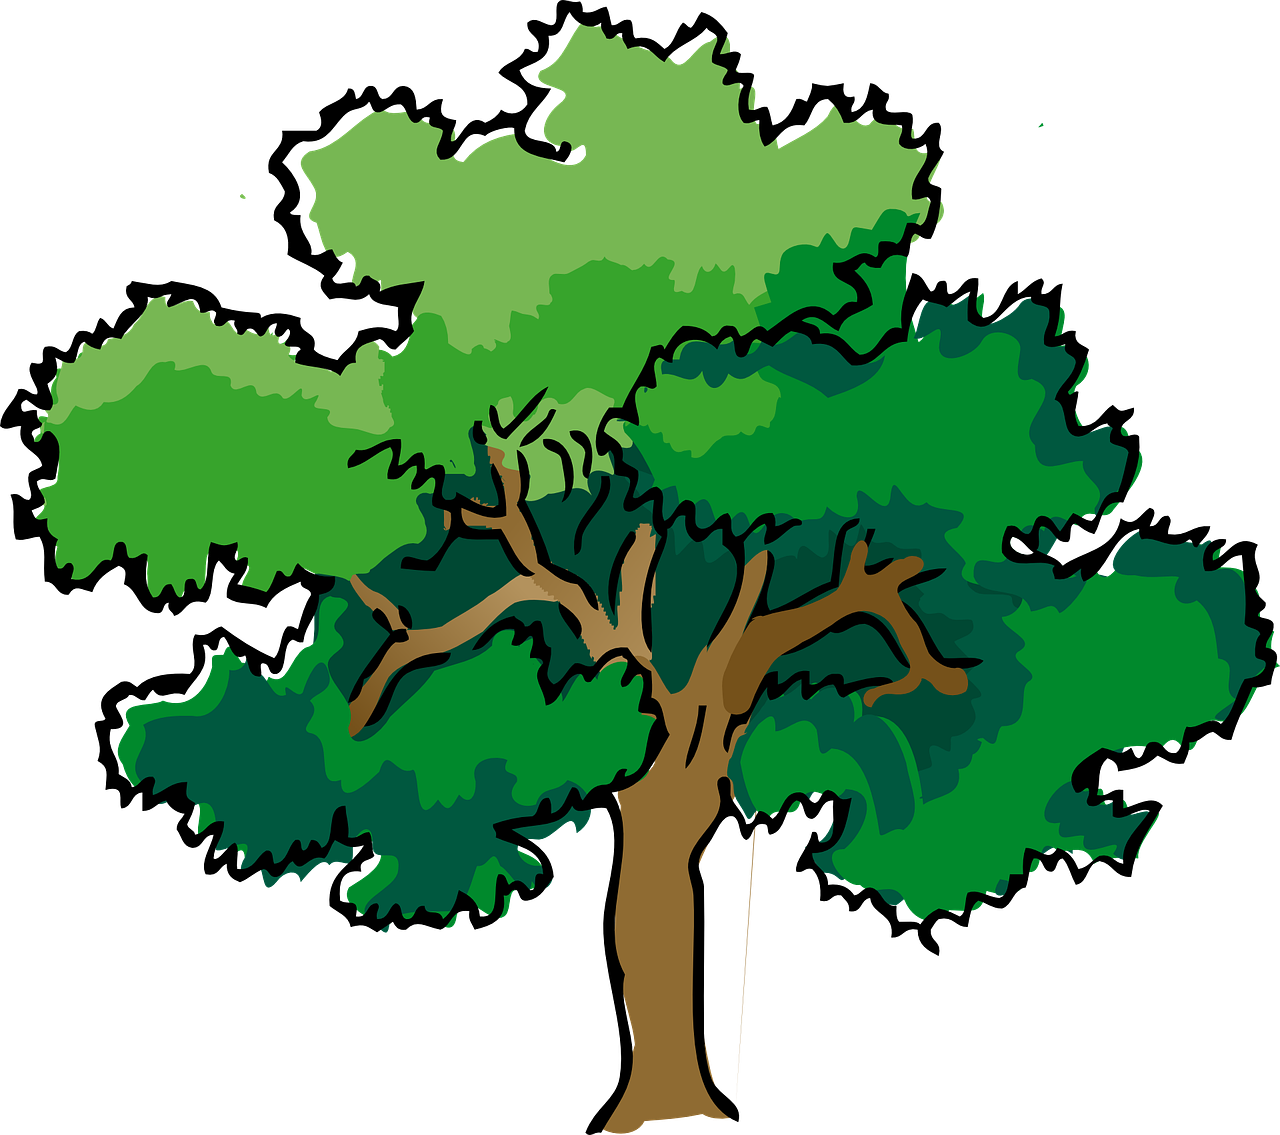 OAK TREE REVIEWS